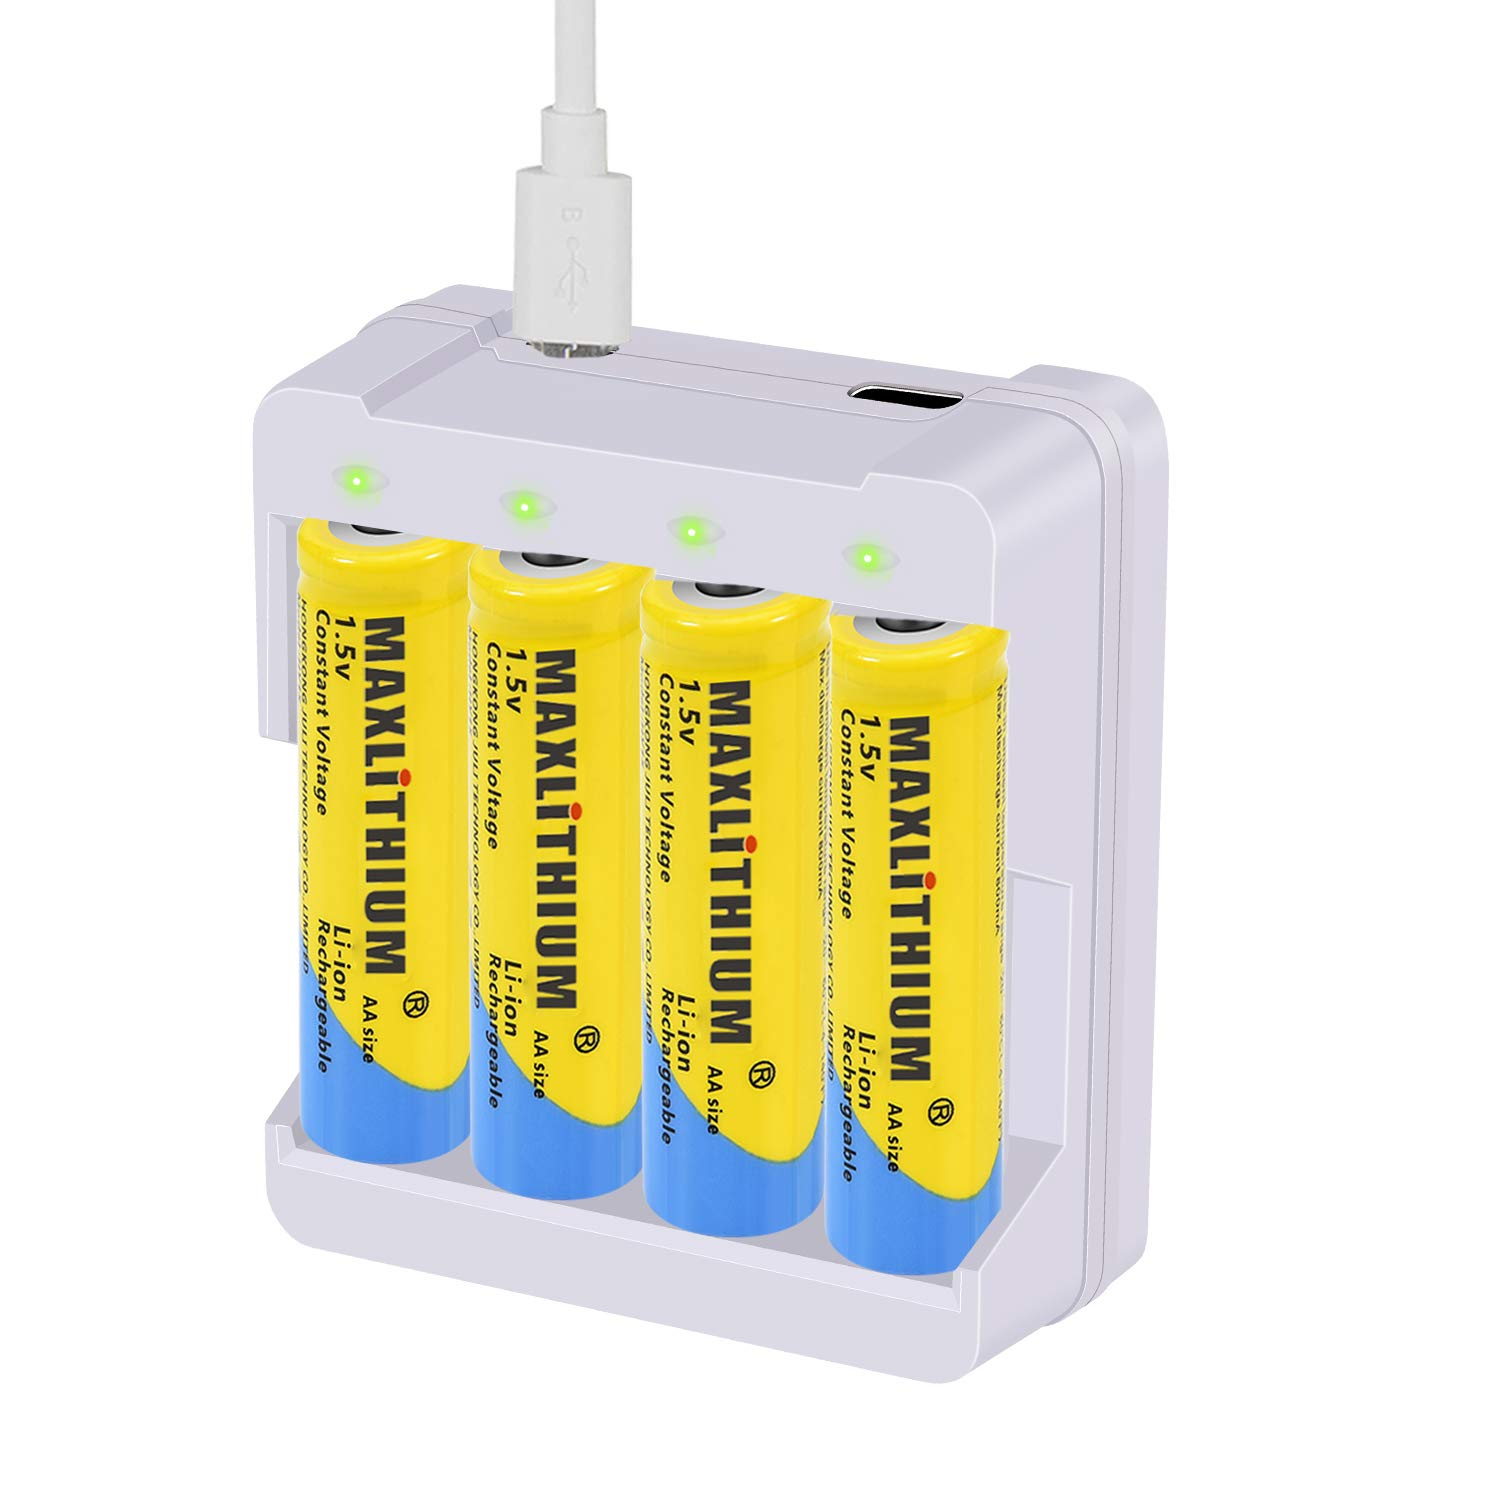 AA Rechargeable Batteries Lithium-ion, 1.5v Constant Voltage Output Double A Battery, 2800 mWh,4 Count with Charger, Maxlithium